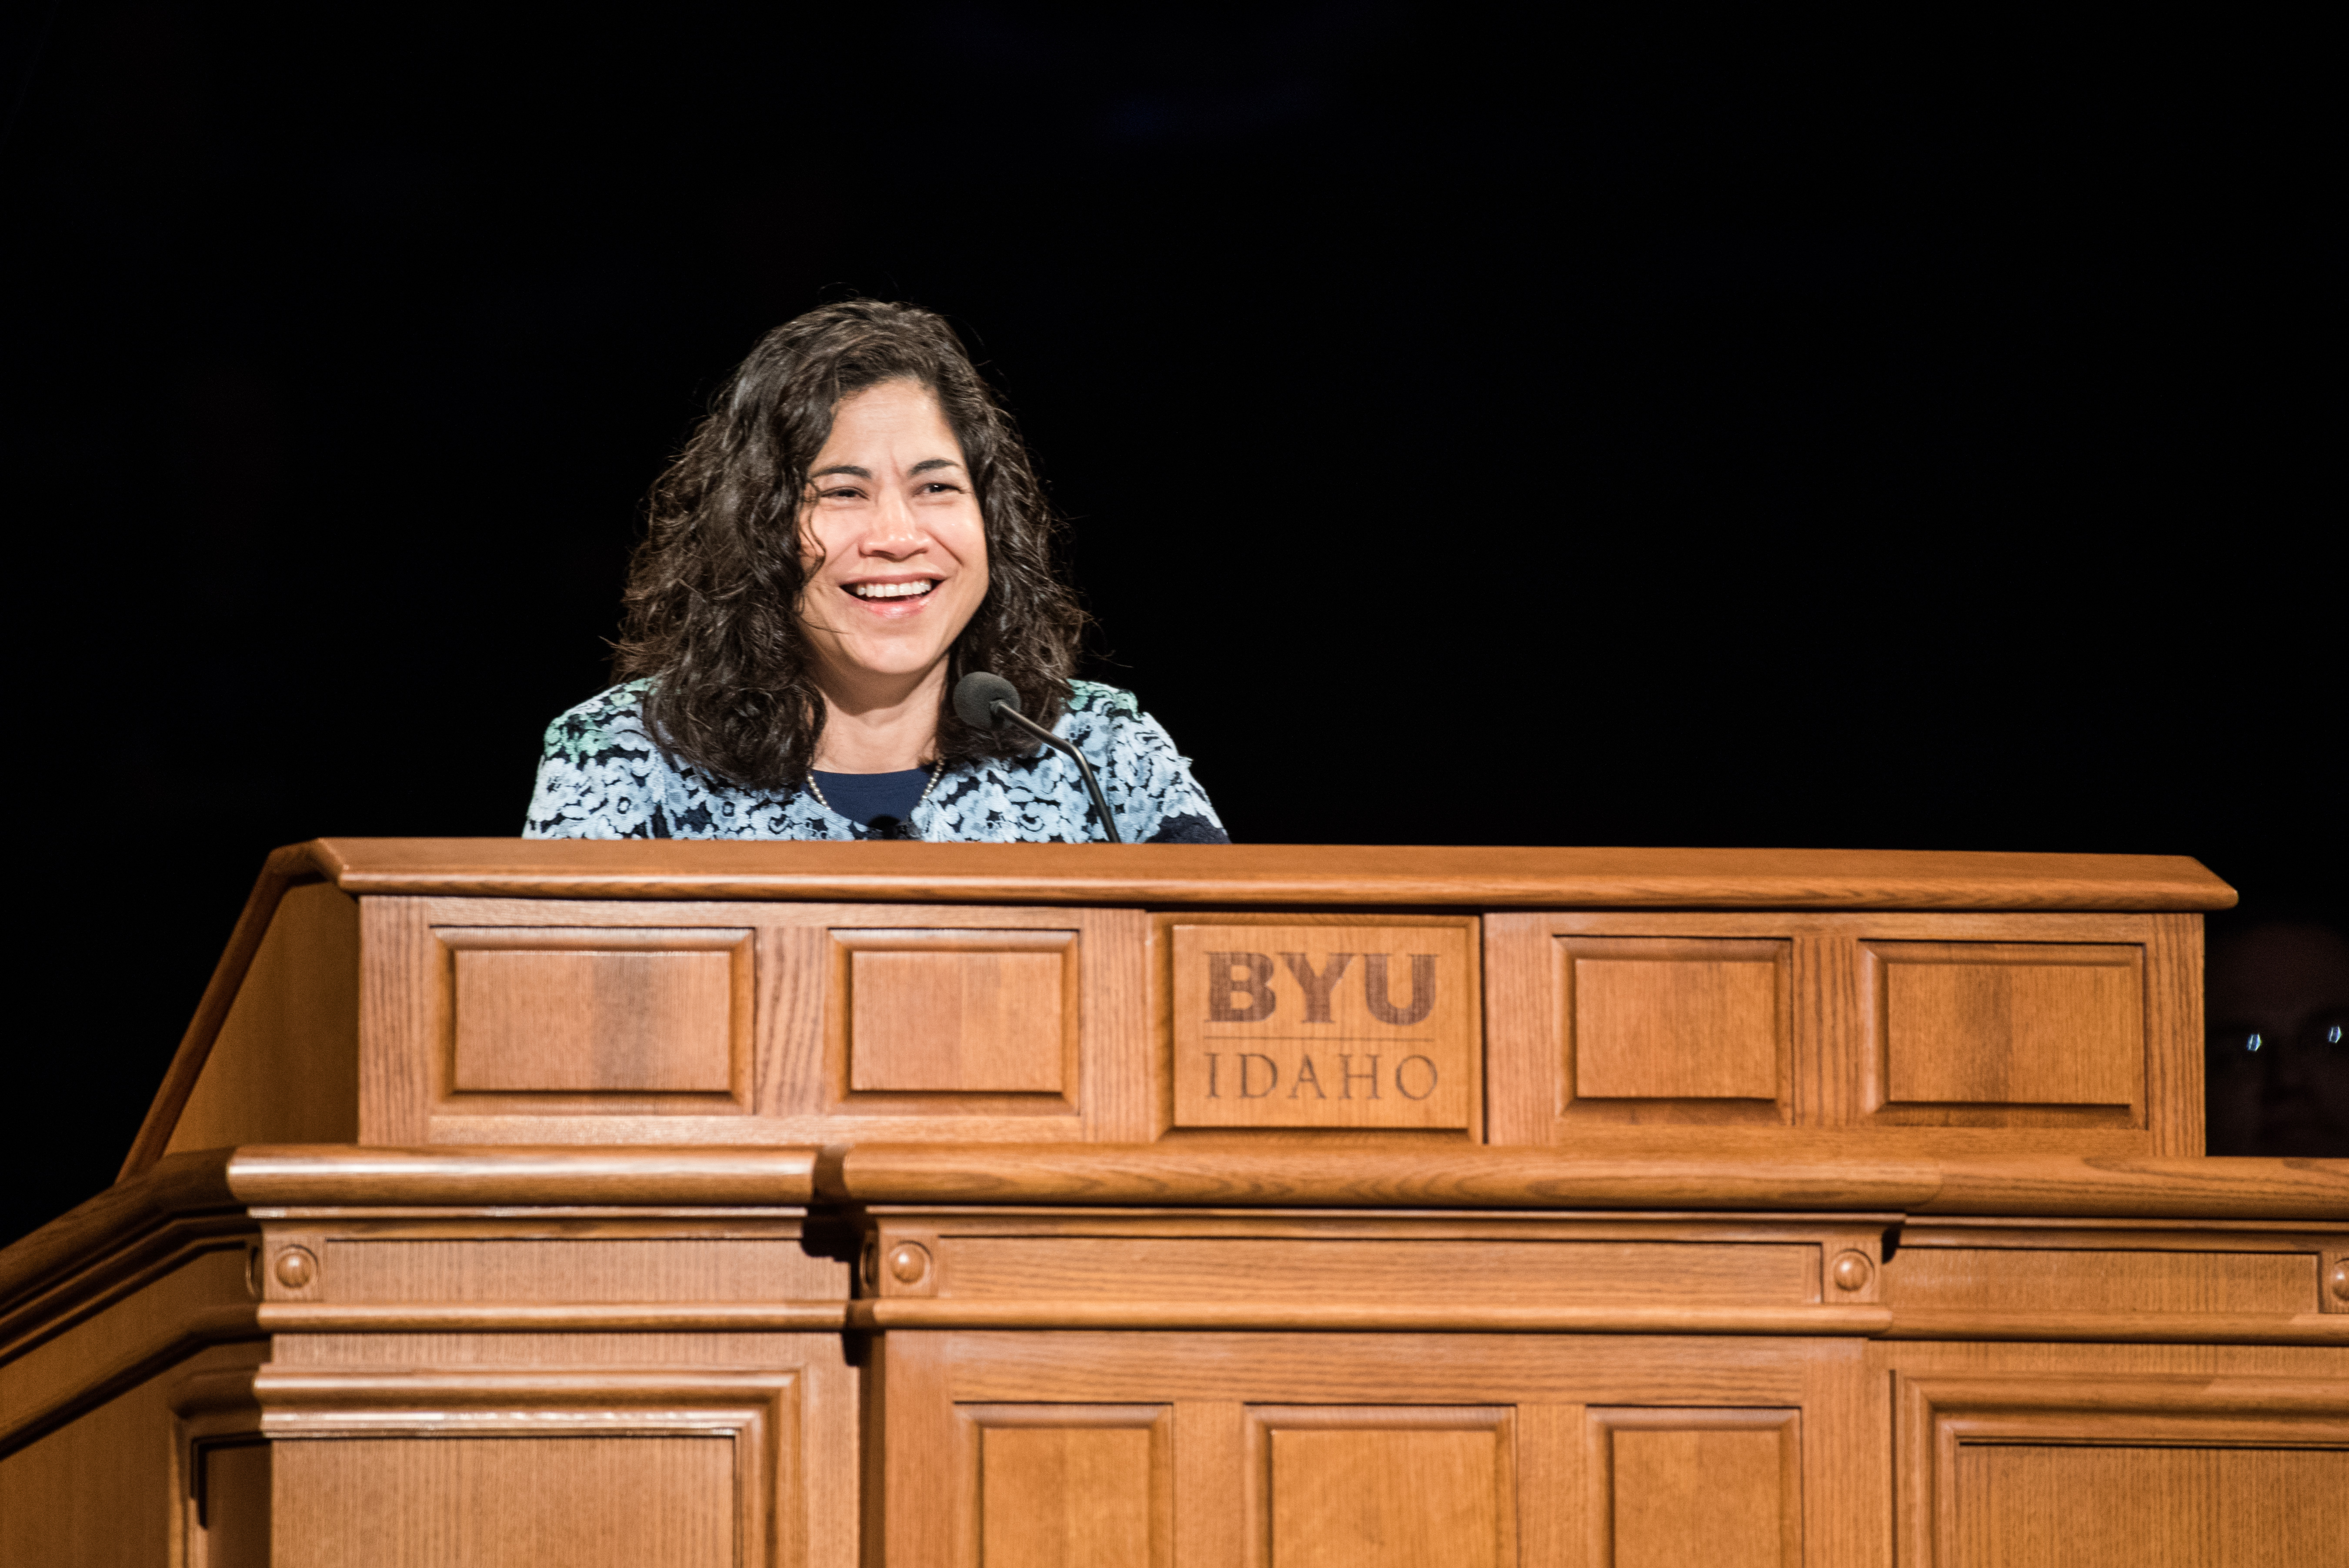 Sister Reyna I. Aburto, second counselor in the Relief Society general presidency, speaks during a BYU-Idaho devotional in the BYU-Idaho Center on June 4, 2019.